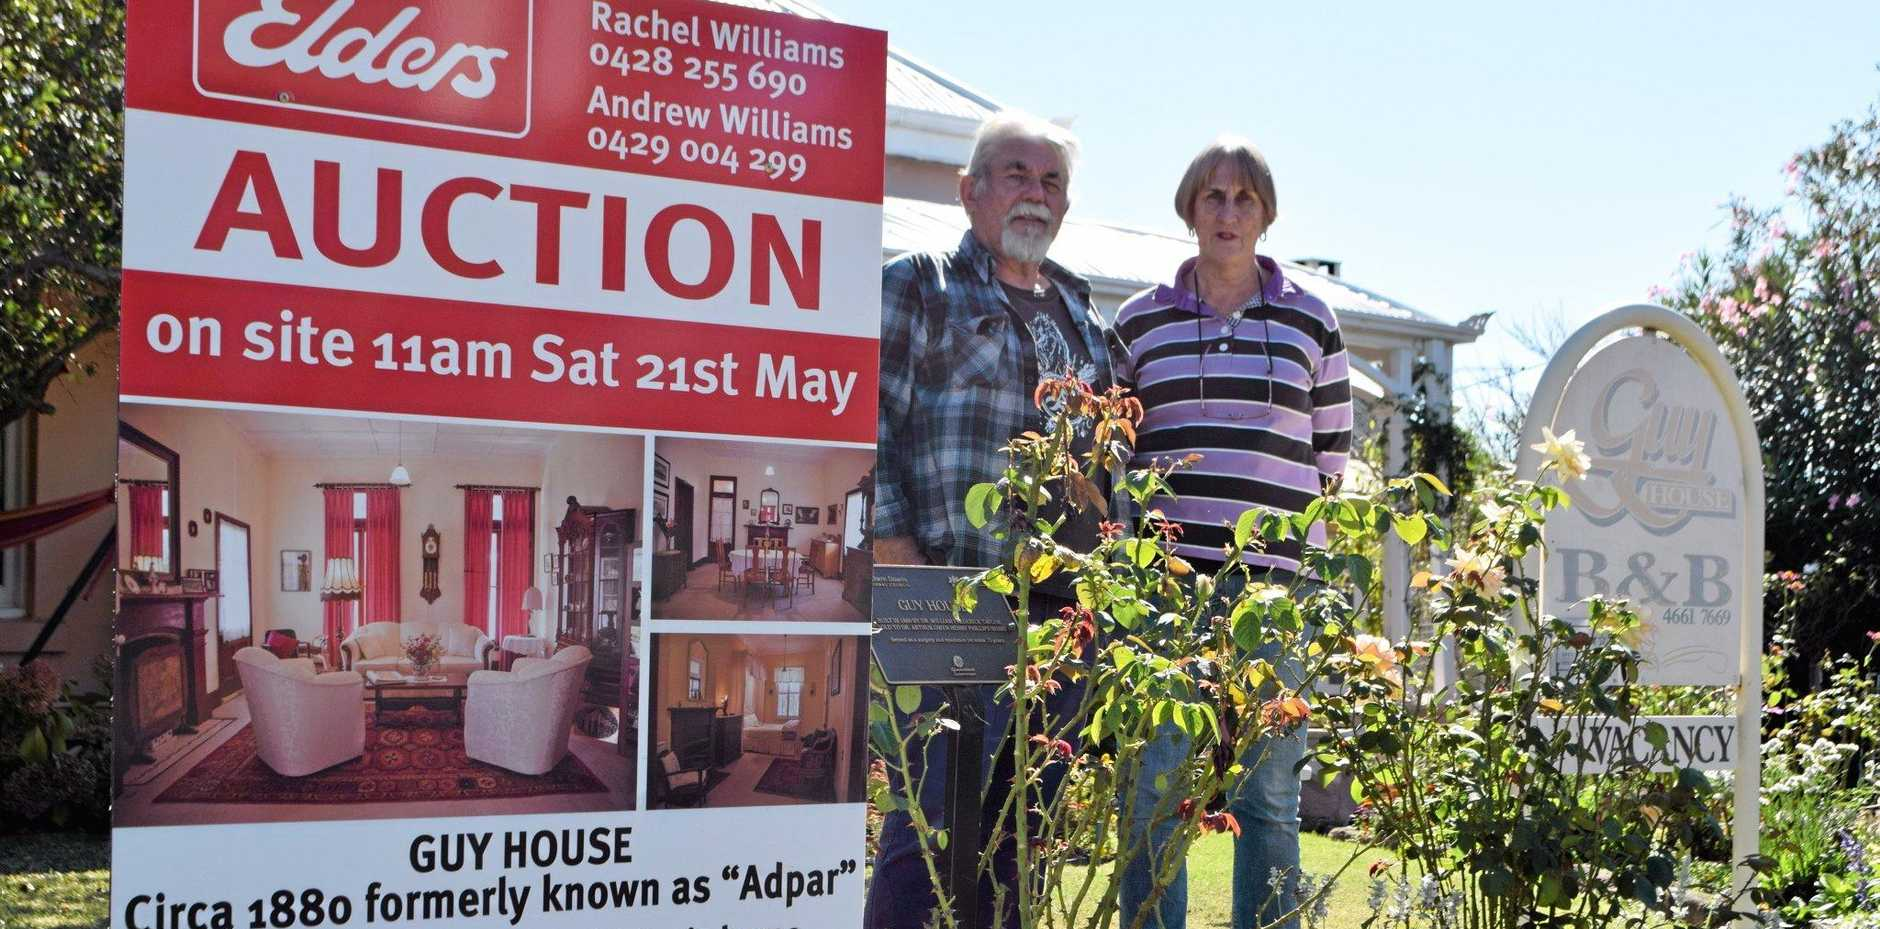 Guy House B&B; owners Larraine and John Nohlmans are selling up, with the 136-year-old home to go under the hammer next weekend.